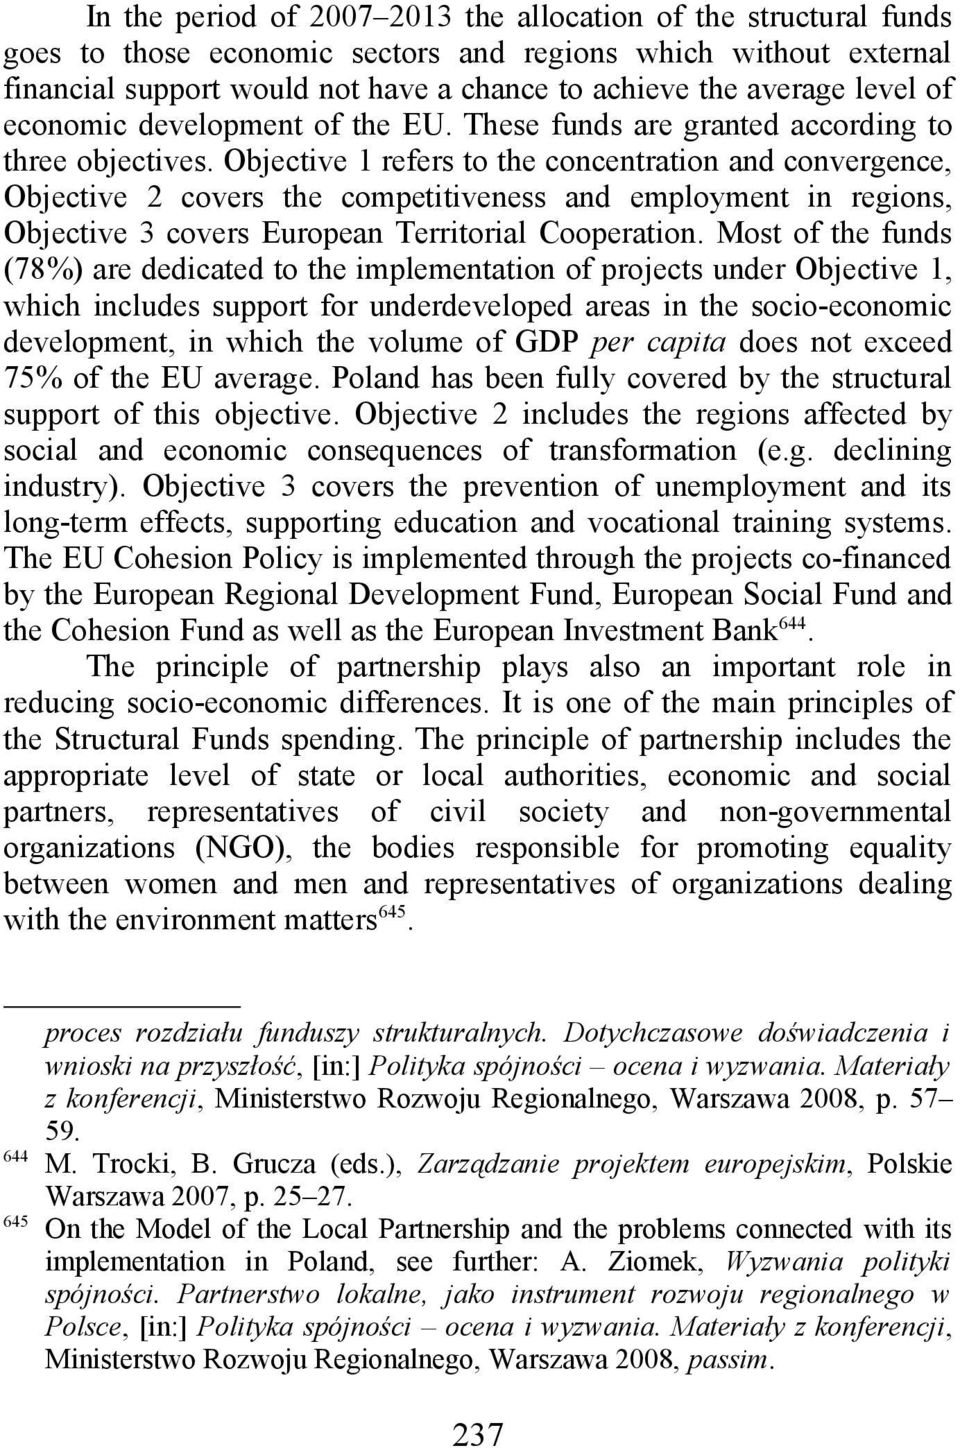 Objective 1 refers to the concentration and convergence, Objective 2 covers the competitiveness and employment in regions, Objective 3 covers European Territorial Cooperation.